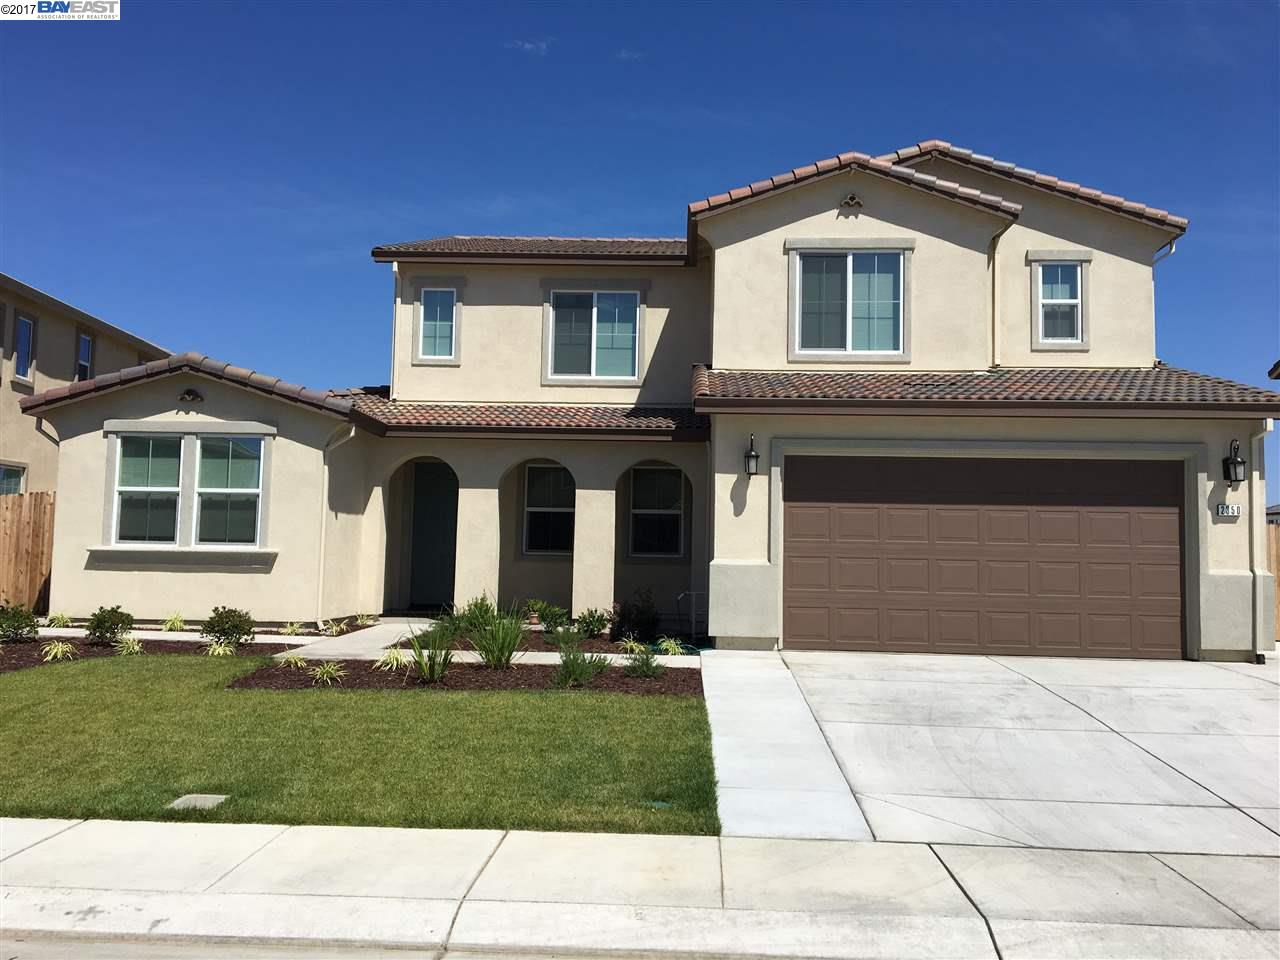 Single Family Home for Sale at 2350 Bismark Avenue Manteca, California 95337 United States